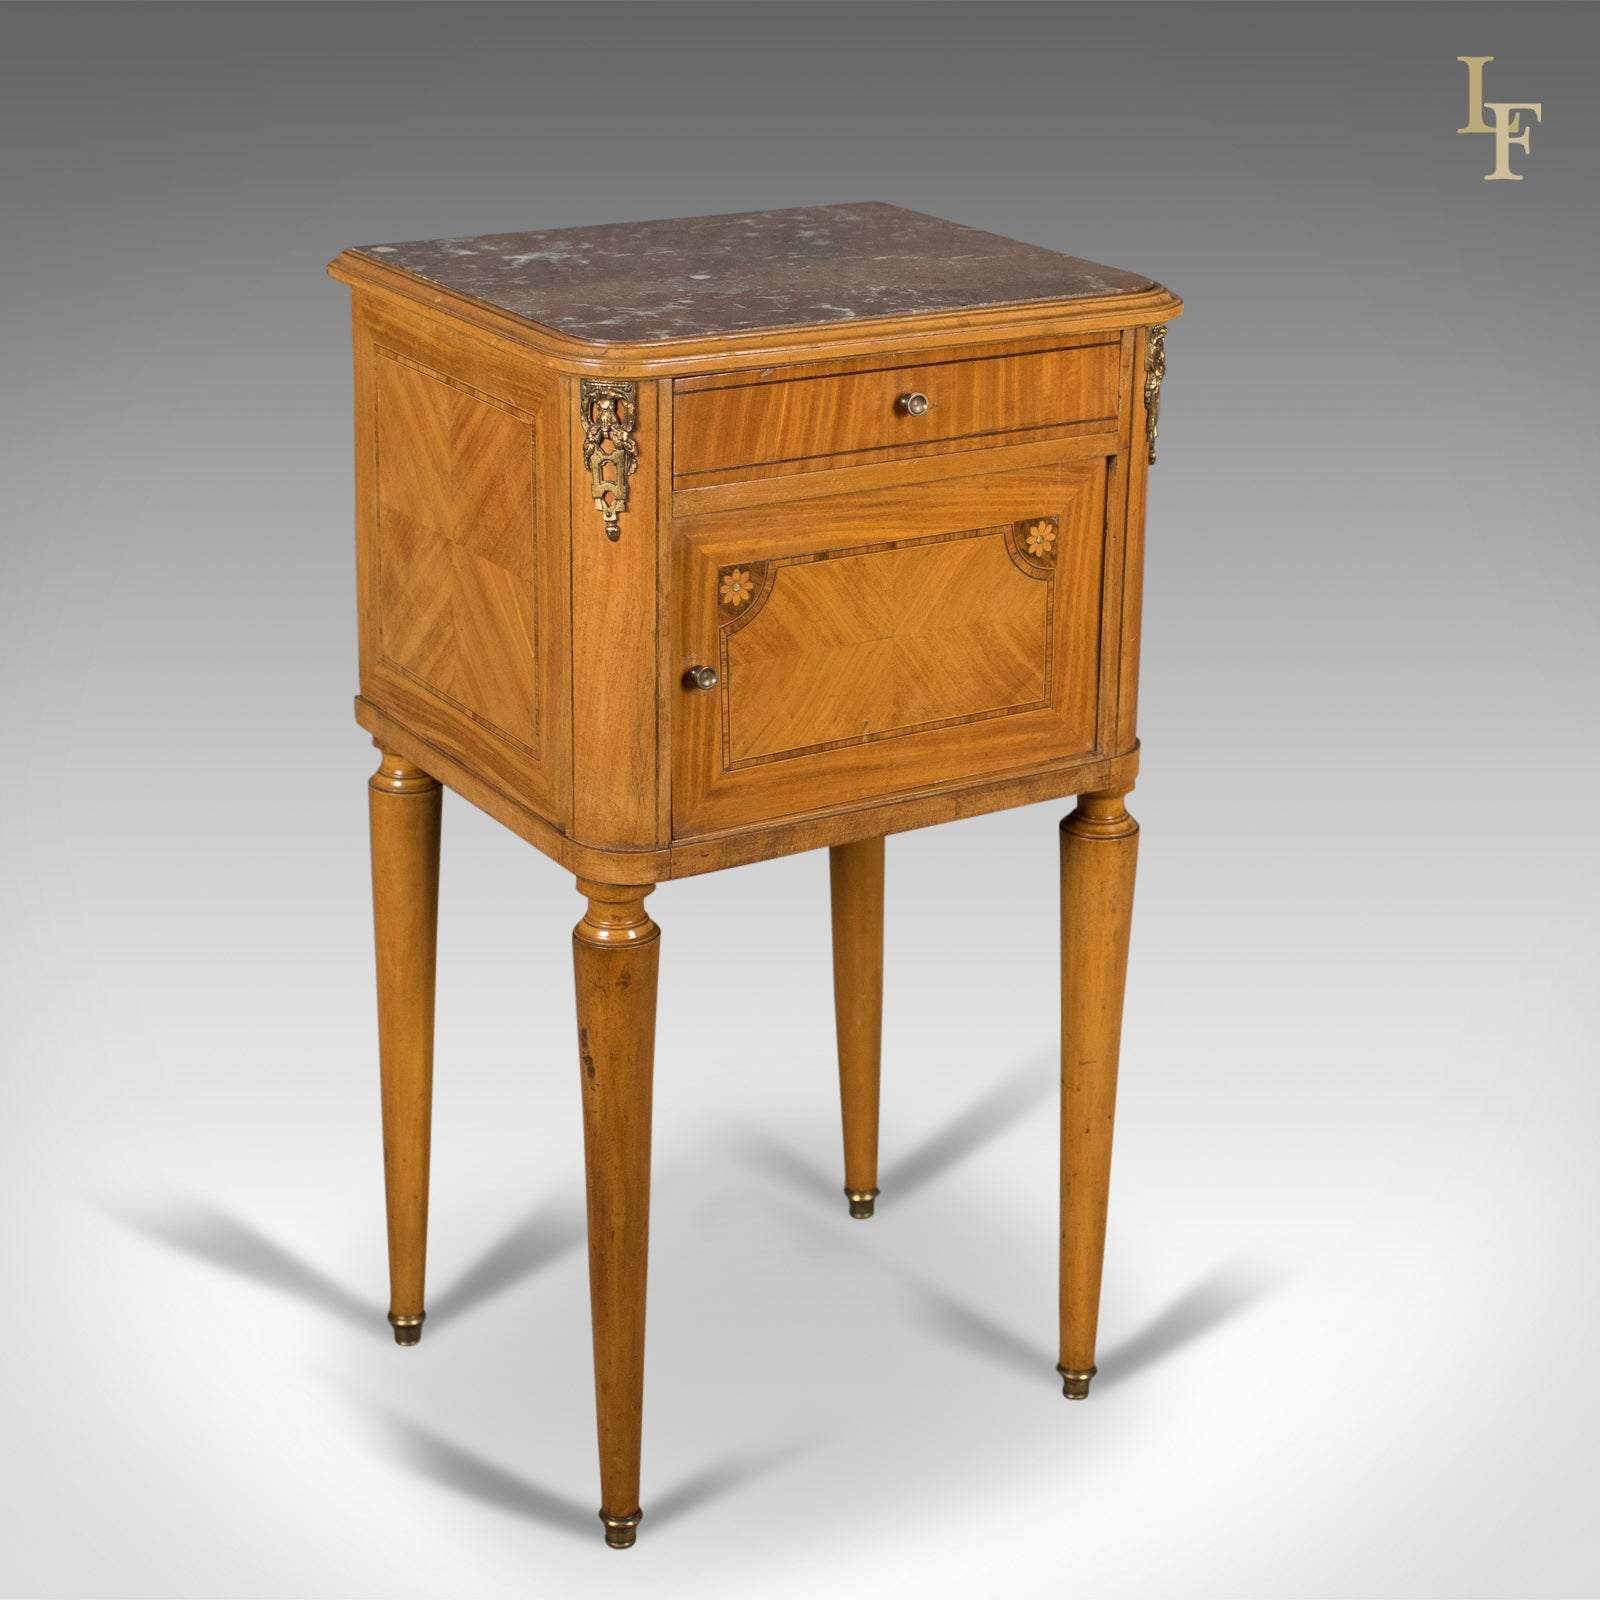 Details About French Antique Bedside Cabinet Marble Top Nightstand C 1890